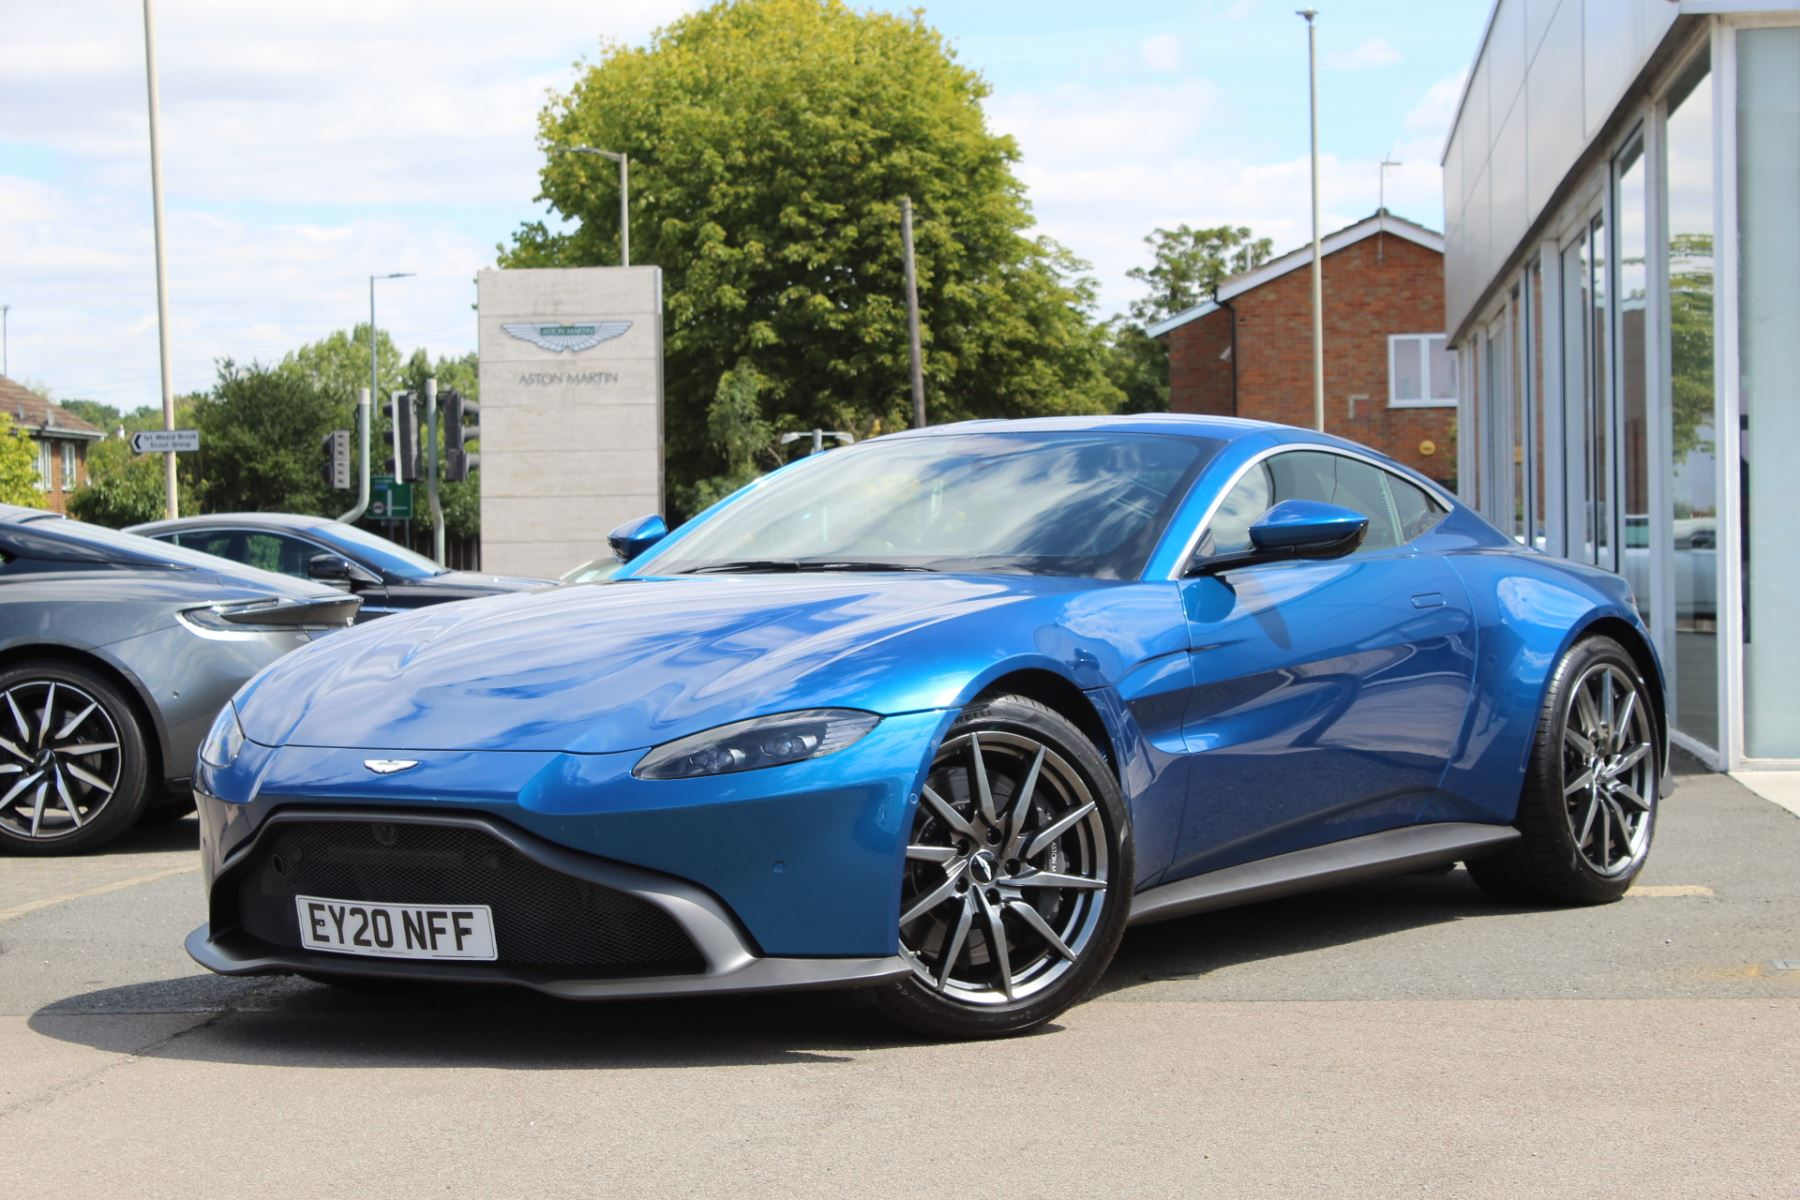 Aston Martin New Vantage 2dr ZF 8 Speed 4.0 Automatic 3 door Coupe (2020) image